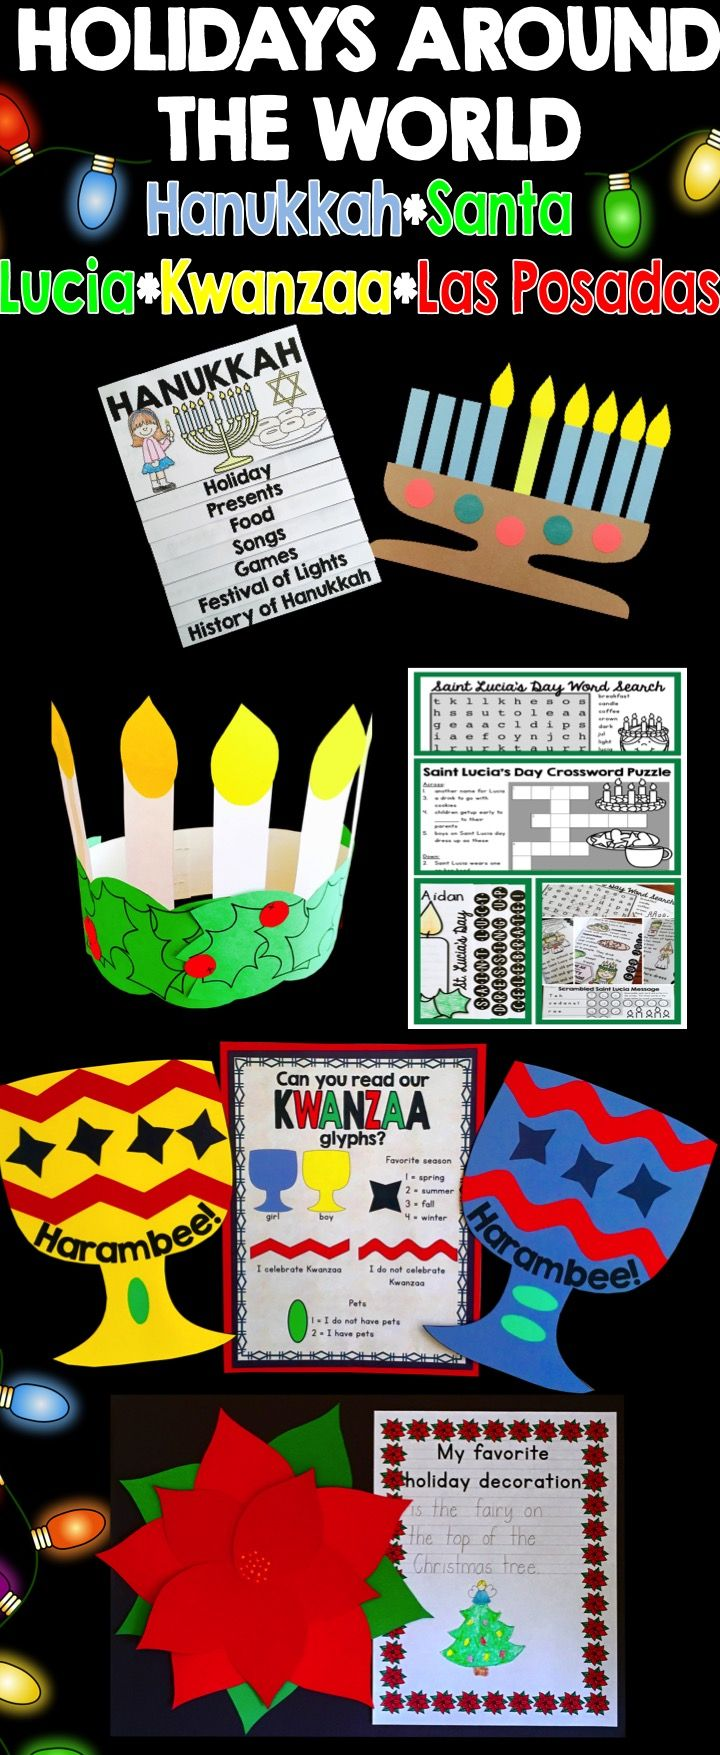 Holidays around the World craft activity bundle for Christmas in Mexico, Hanukkah, Santa Lucia and Kwanzaa.  Each holiday comes with a flip book.